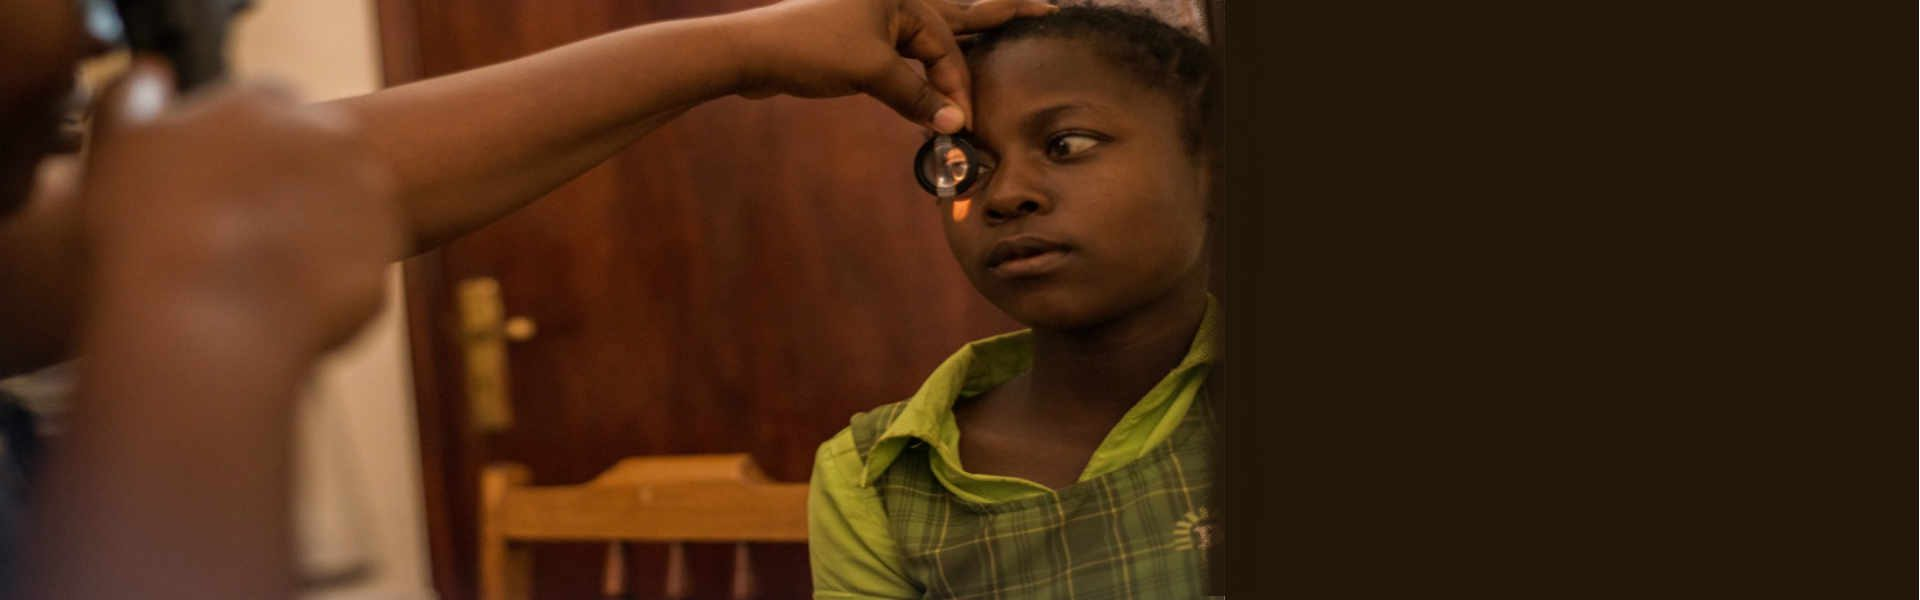 Vision therapist examines 15 year old Christine's eyes